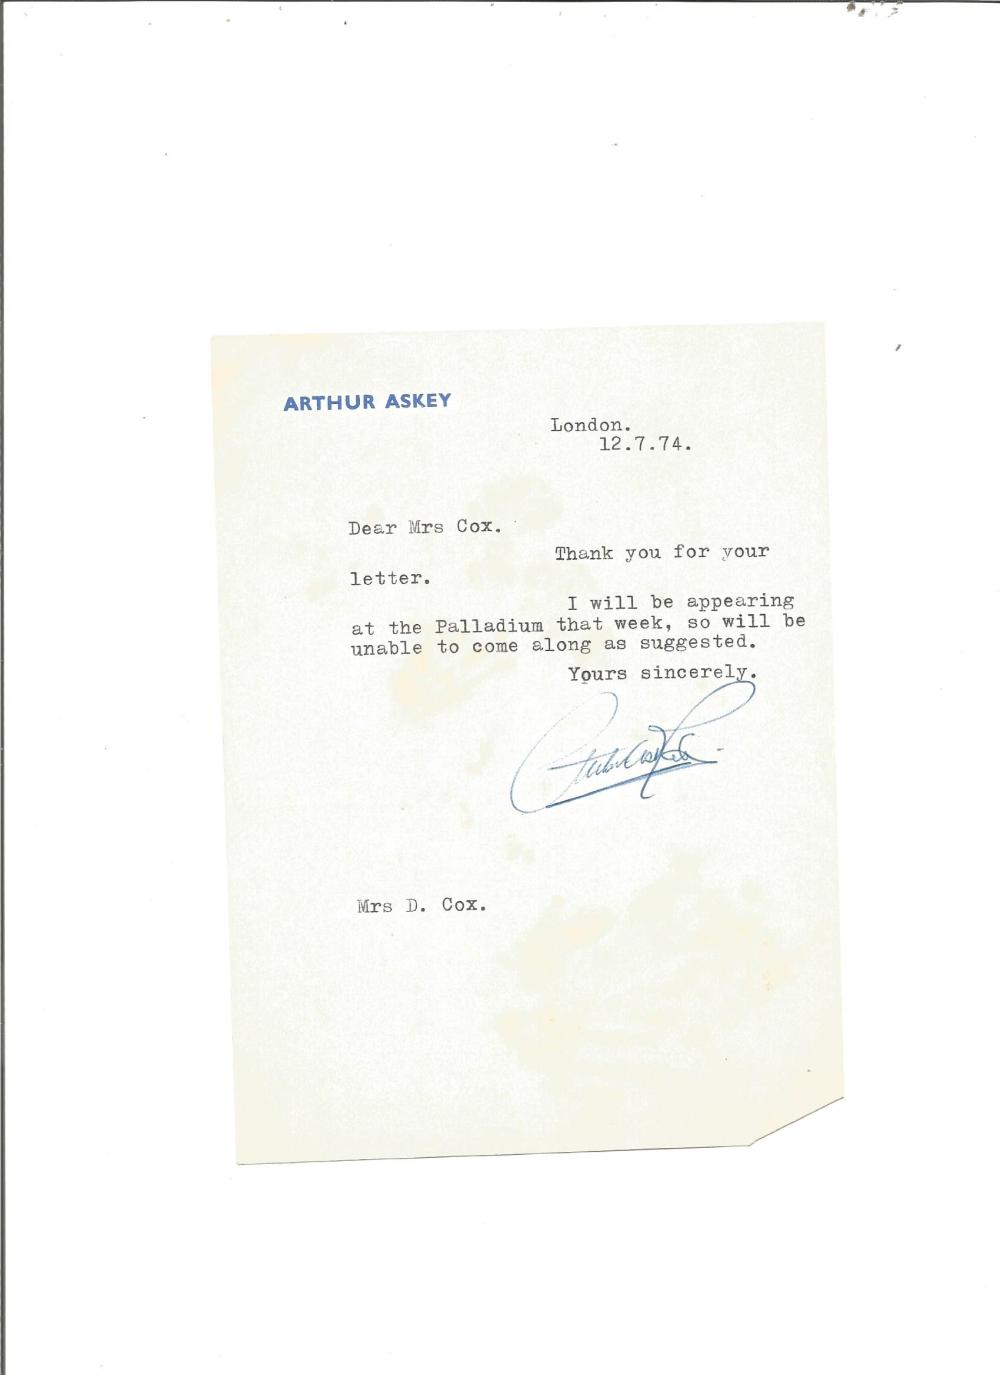 Arthur Askey TLS dated 12/7/74 concerning an invitation. Good Condition. All signed pieces come with